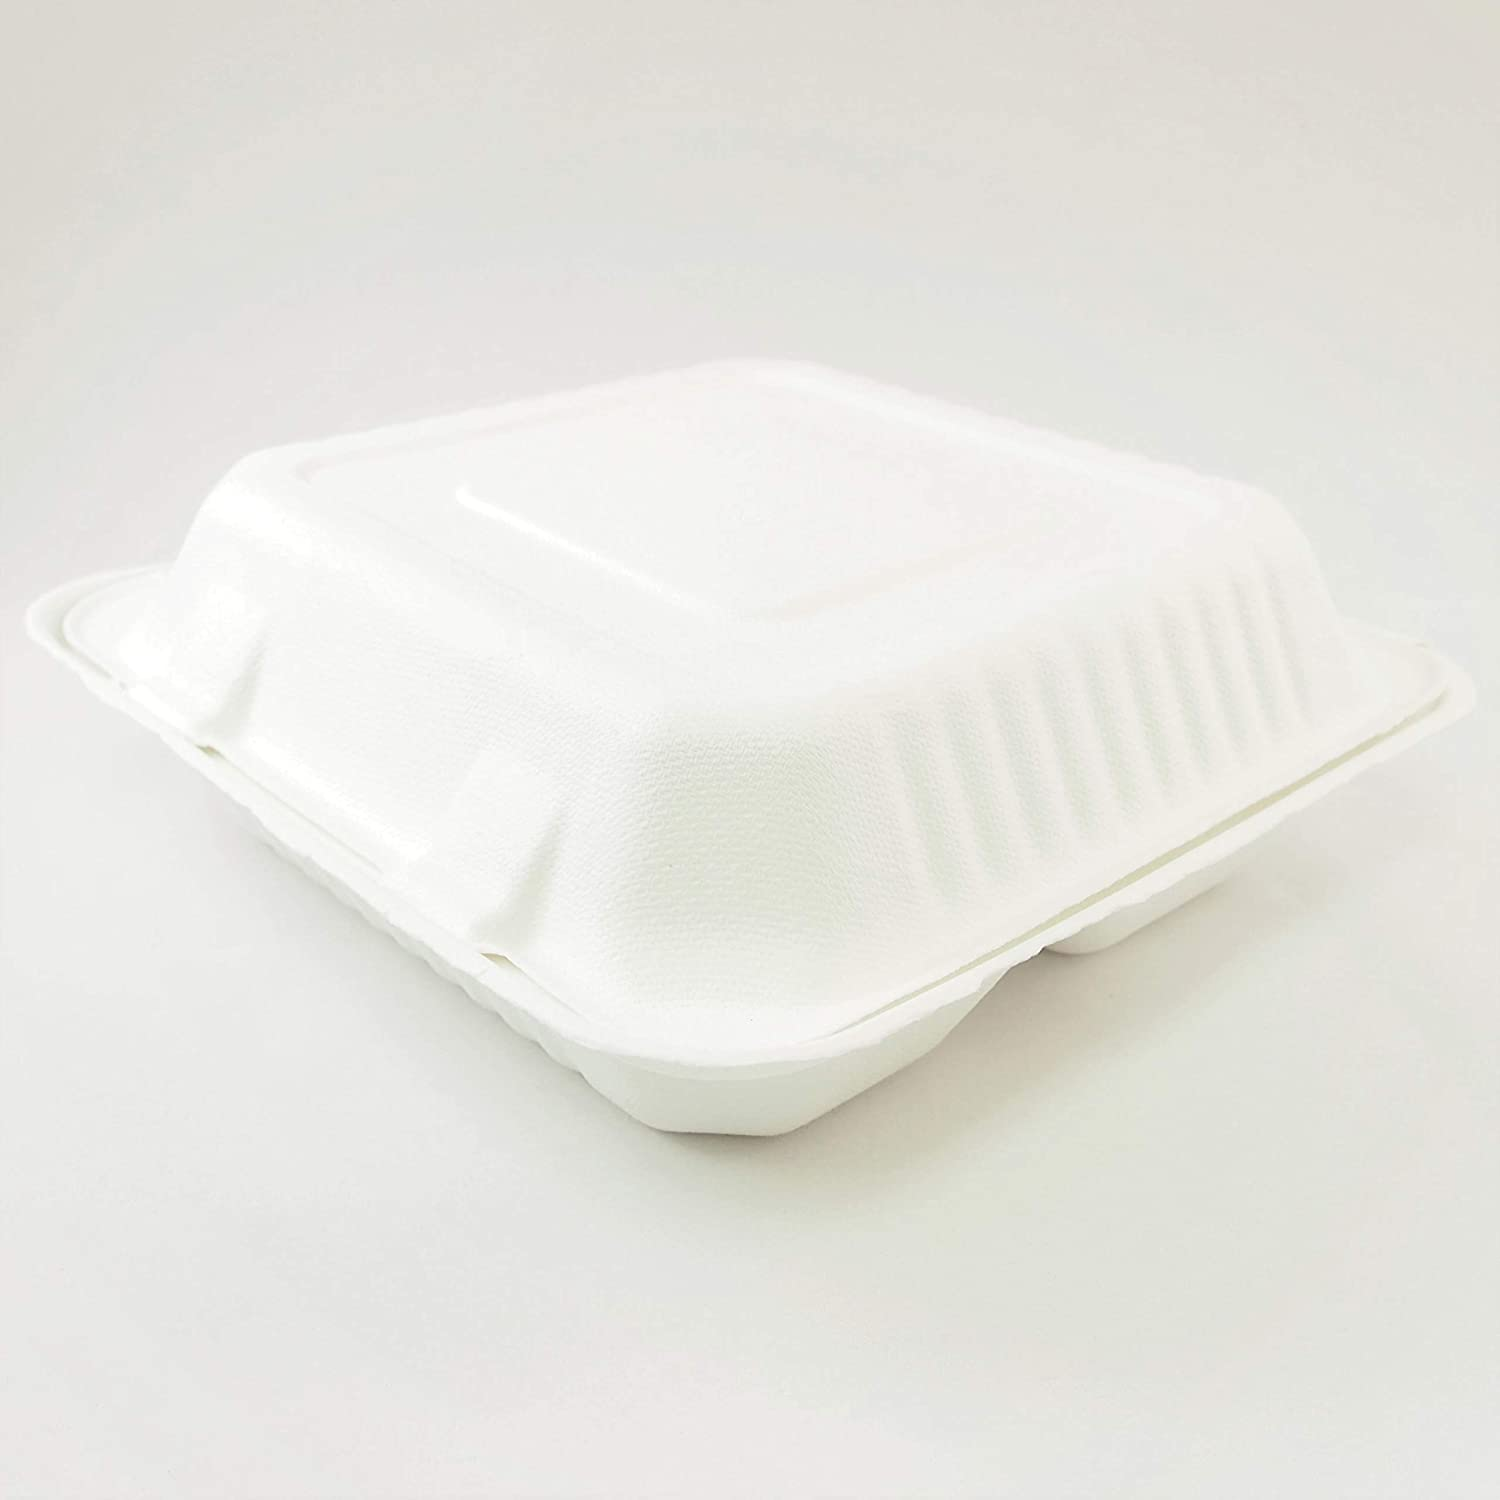 50 Pack Disposable 100/% Biodegradable Compostable 9x 9 Clamshell 3-Compartment Carryout Takeout Containers by Walvis Eco Products